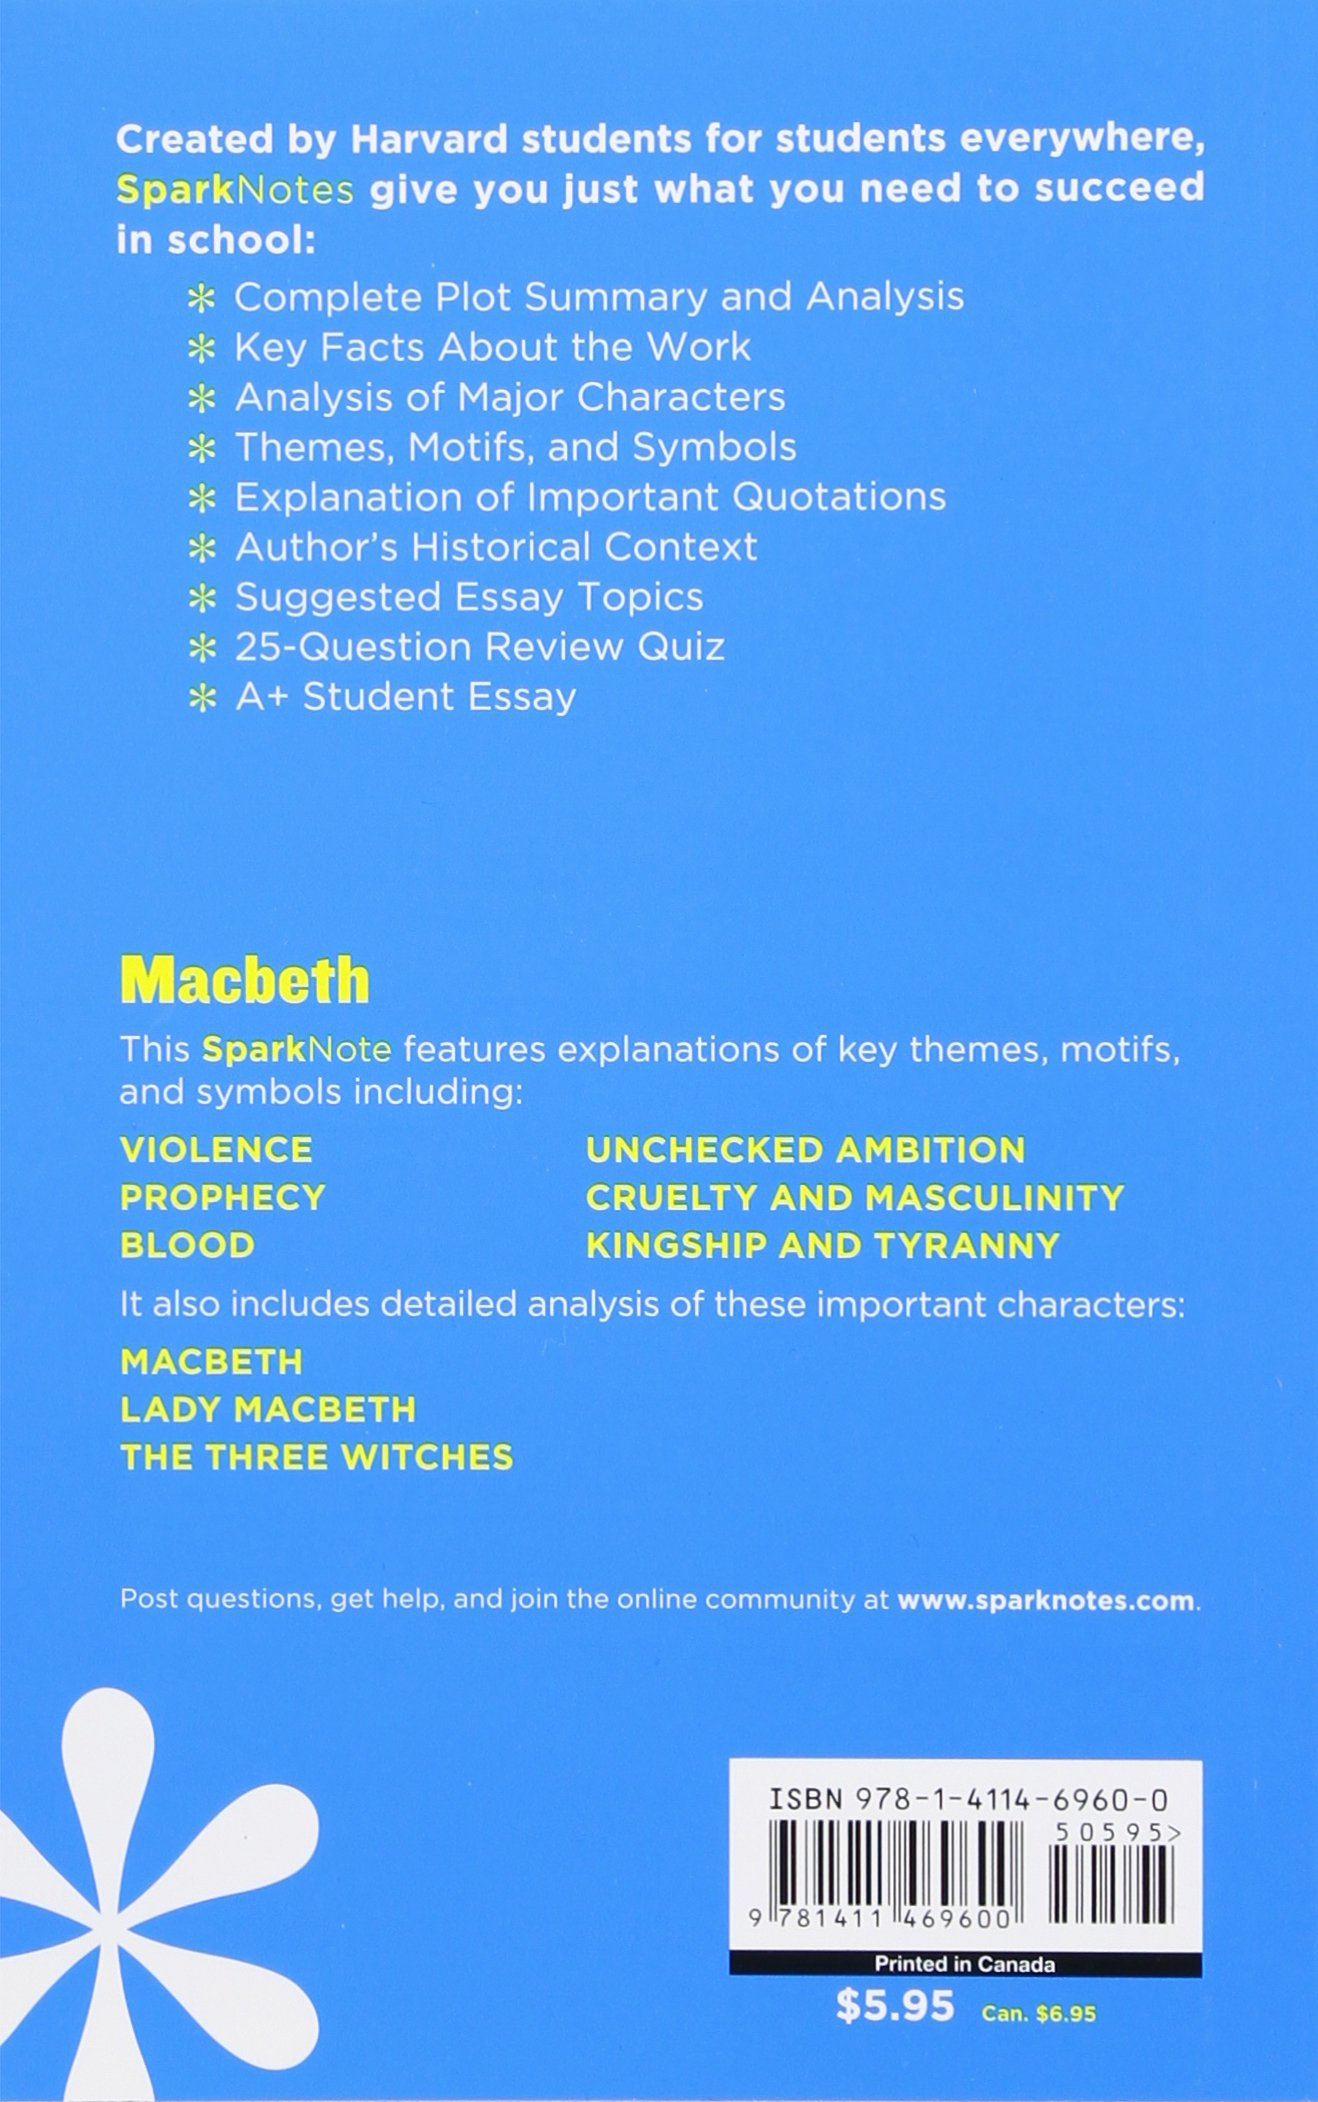 macbeth themes essay darkness essay macbeth themes in macbeth  com macbeth sparknotes literature guide sparknotes com macbeth sparknotes literature guide sparknotes literature guide series 9781411469600